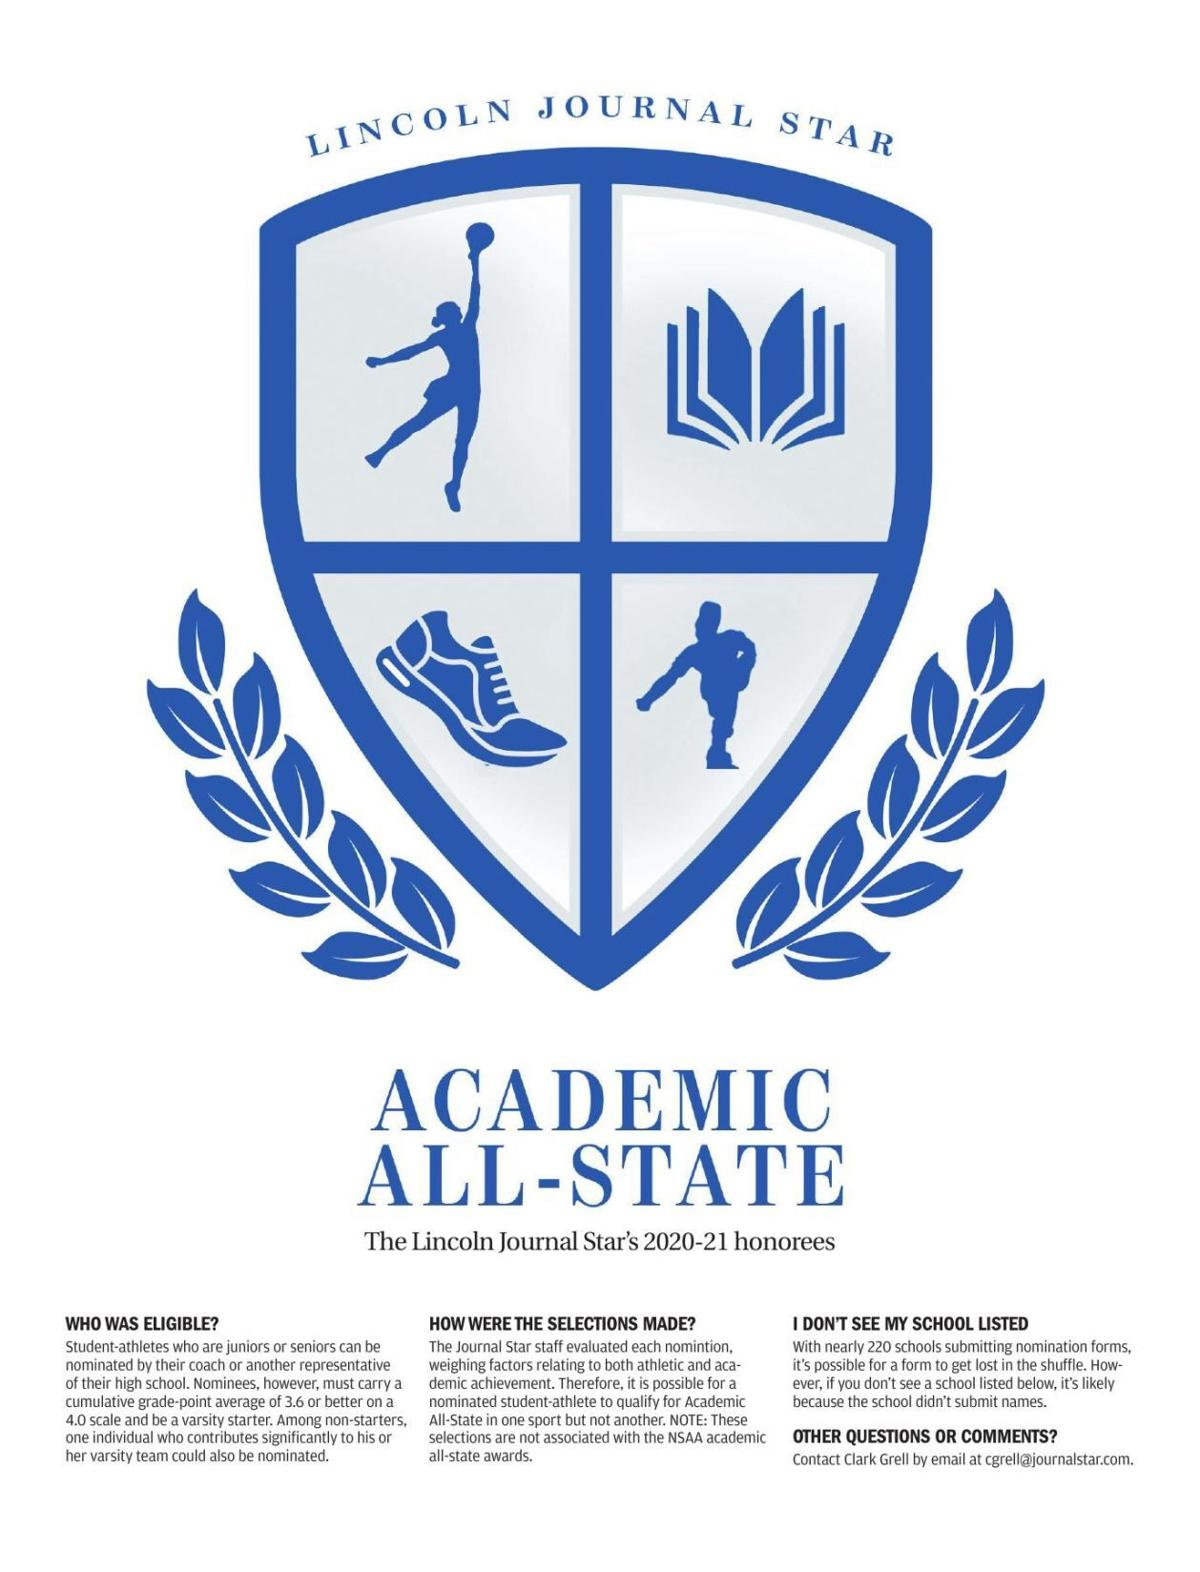 2020-21 Journal Star Academic All-State honorees